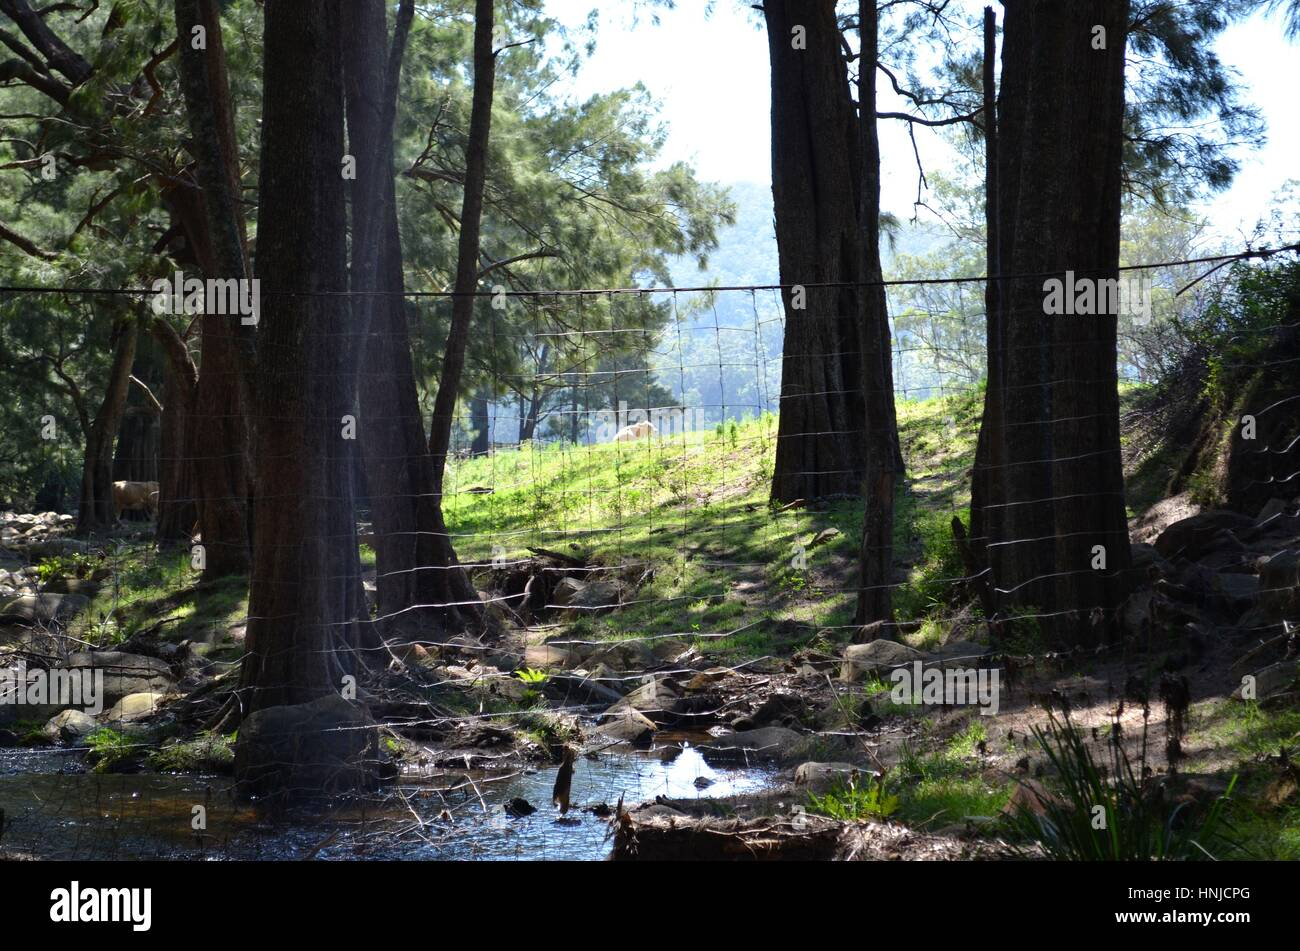 Wire fence looking very out of place in glorious river setting Australia - Stock Image